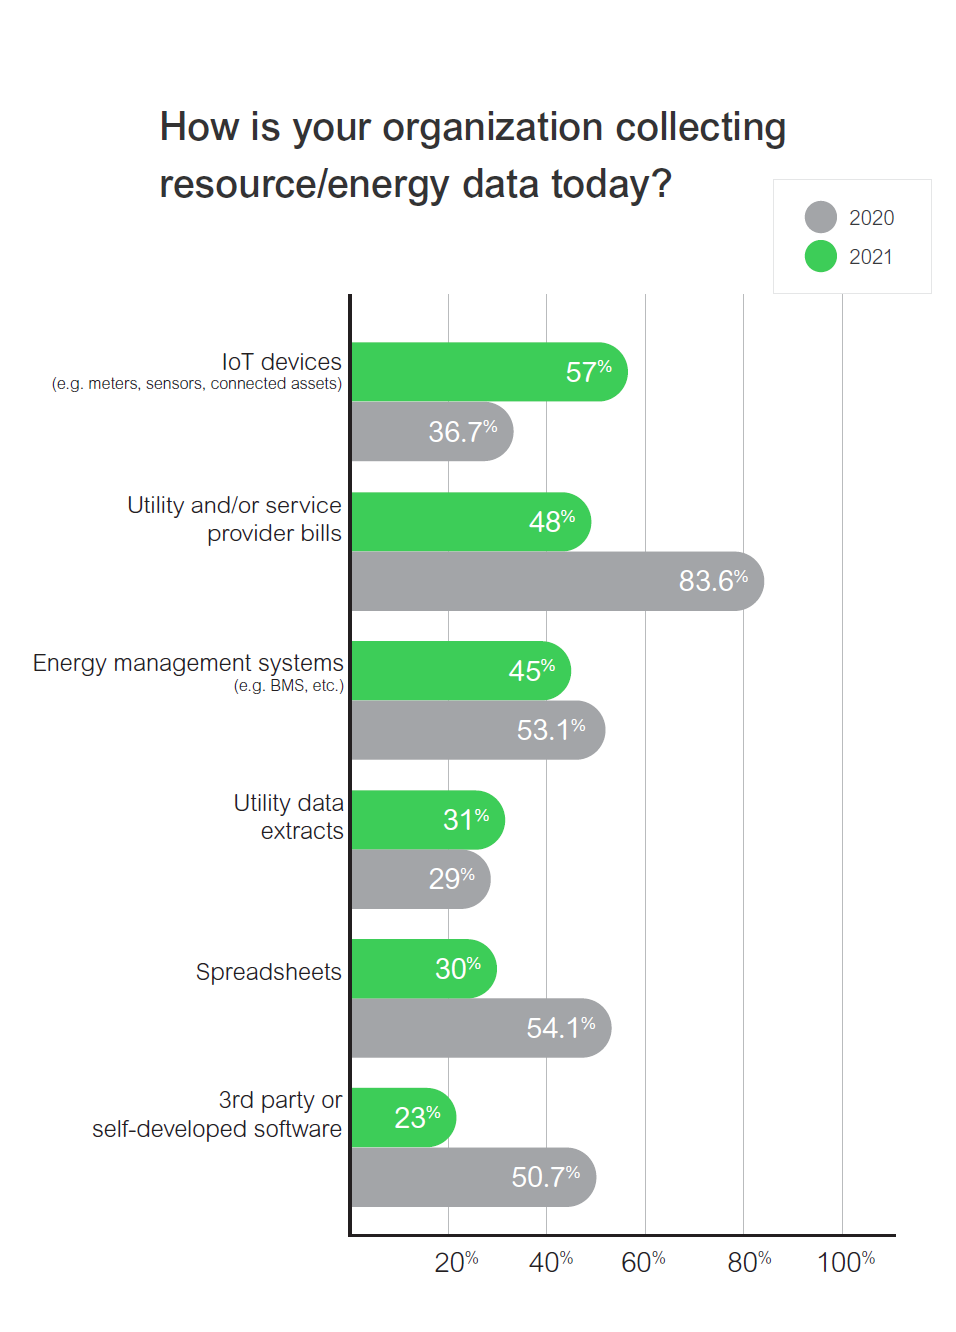 How organizations are collecting resource and energy data